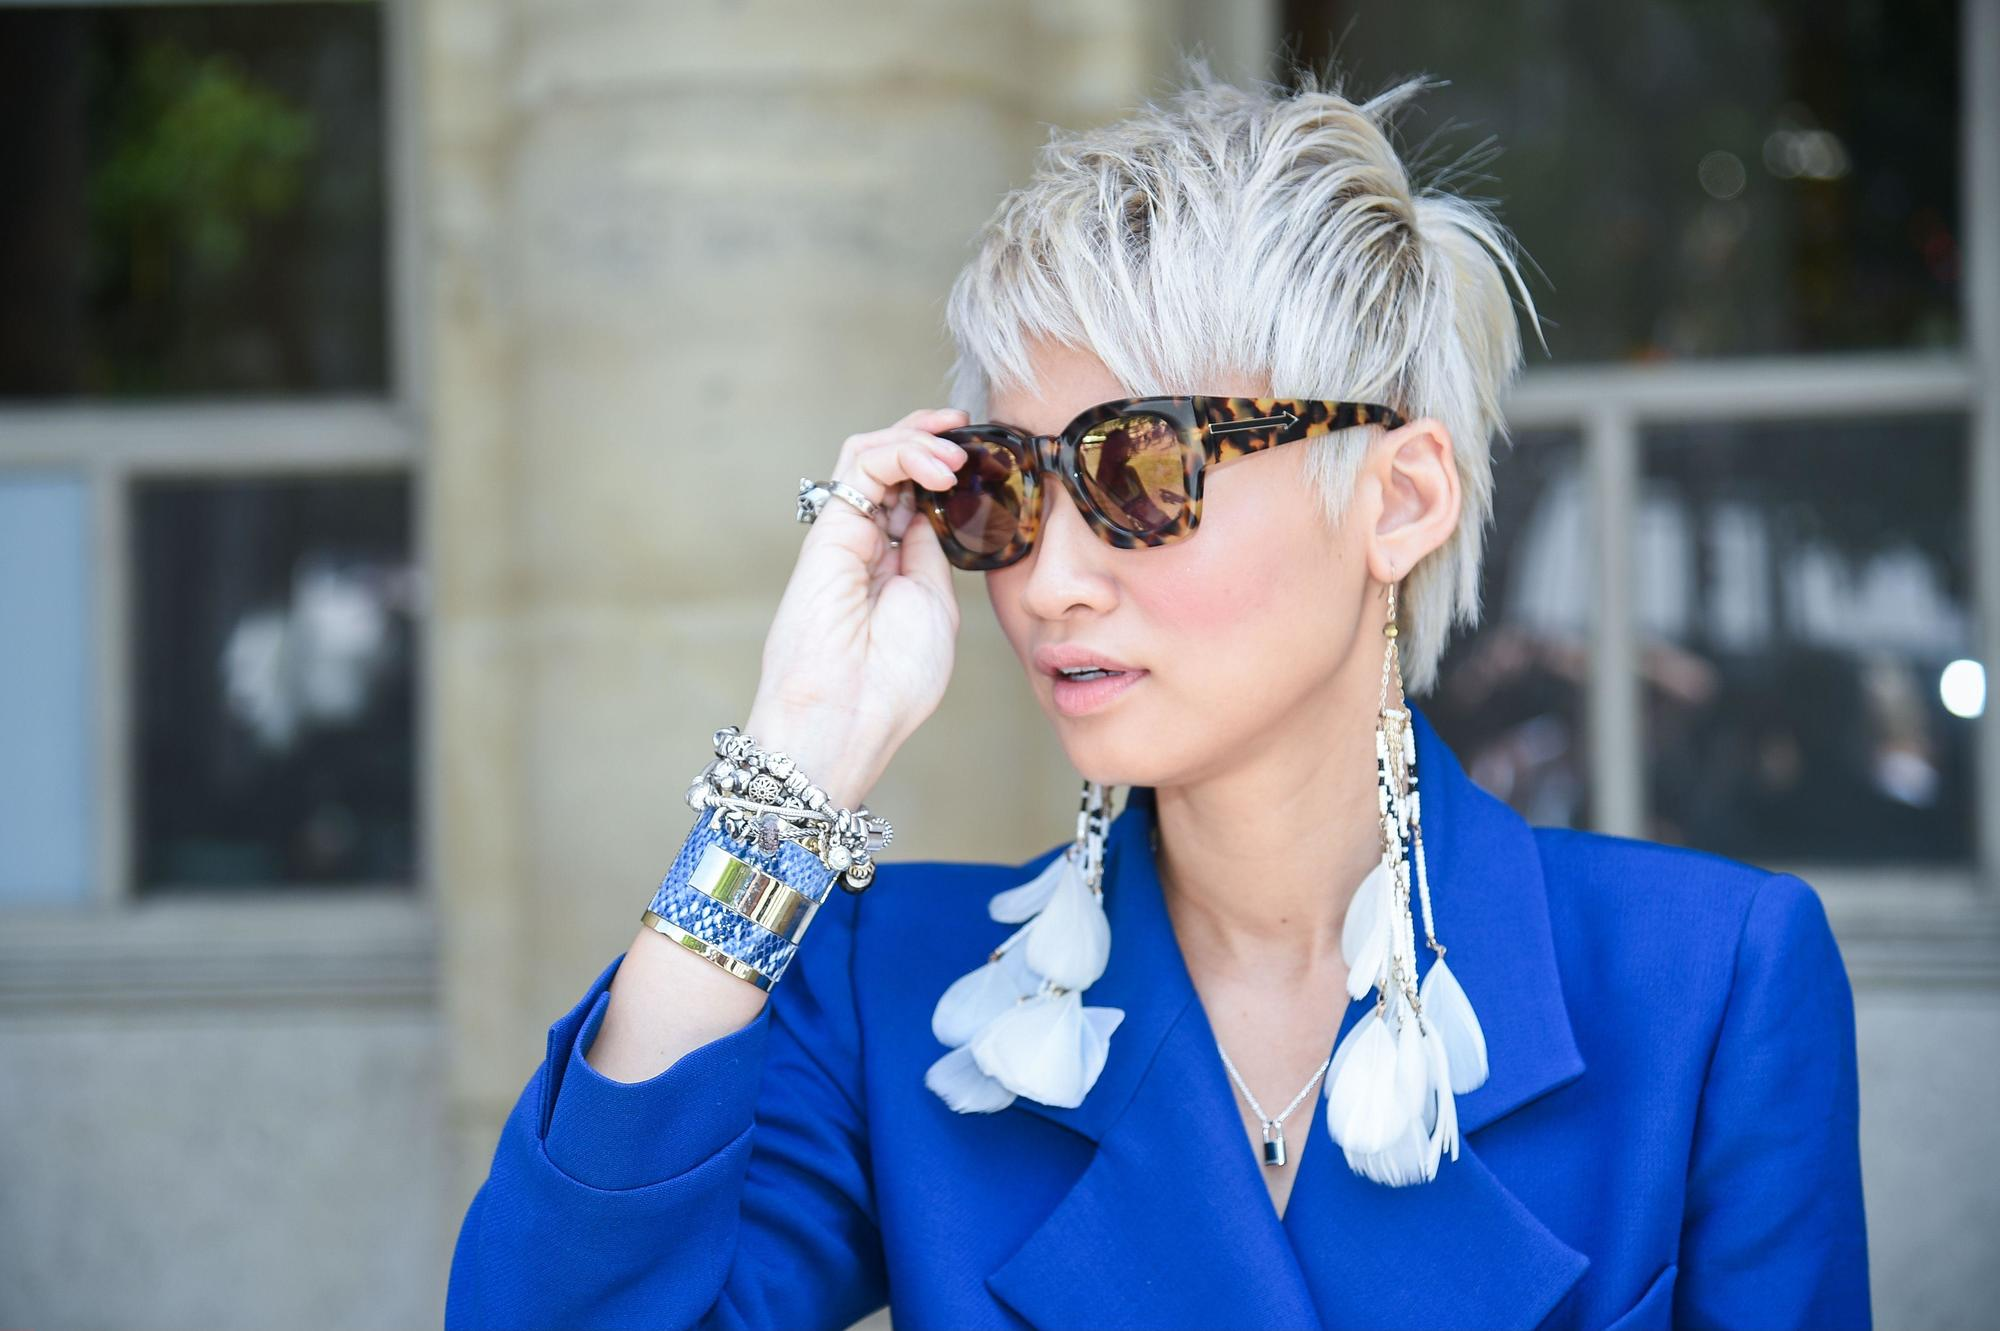 Purple conditioner for blonde hair: Street style model with short hair and a long fringe hairstyle, wearing sunglasses and blue jacket